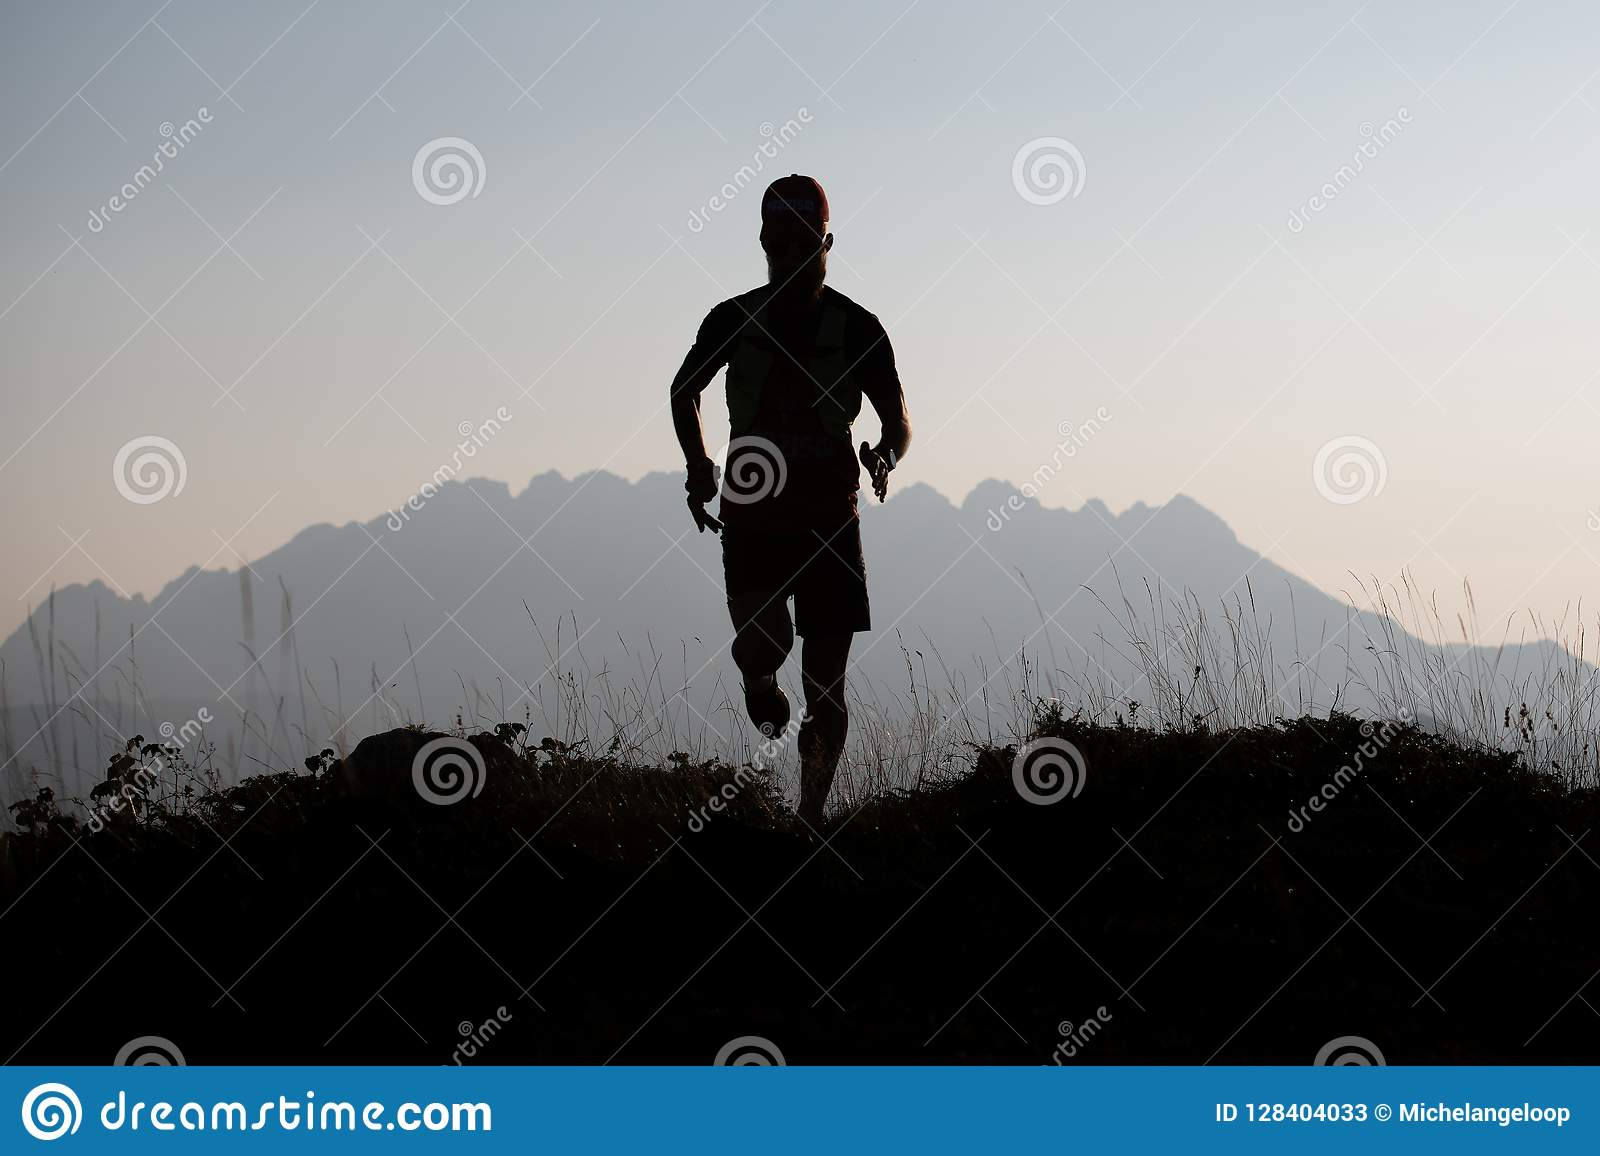 Mountain runner in silhouette in a suggestive landscape